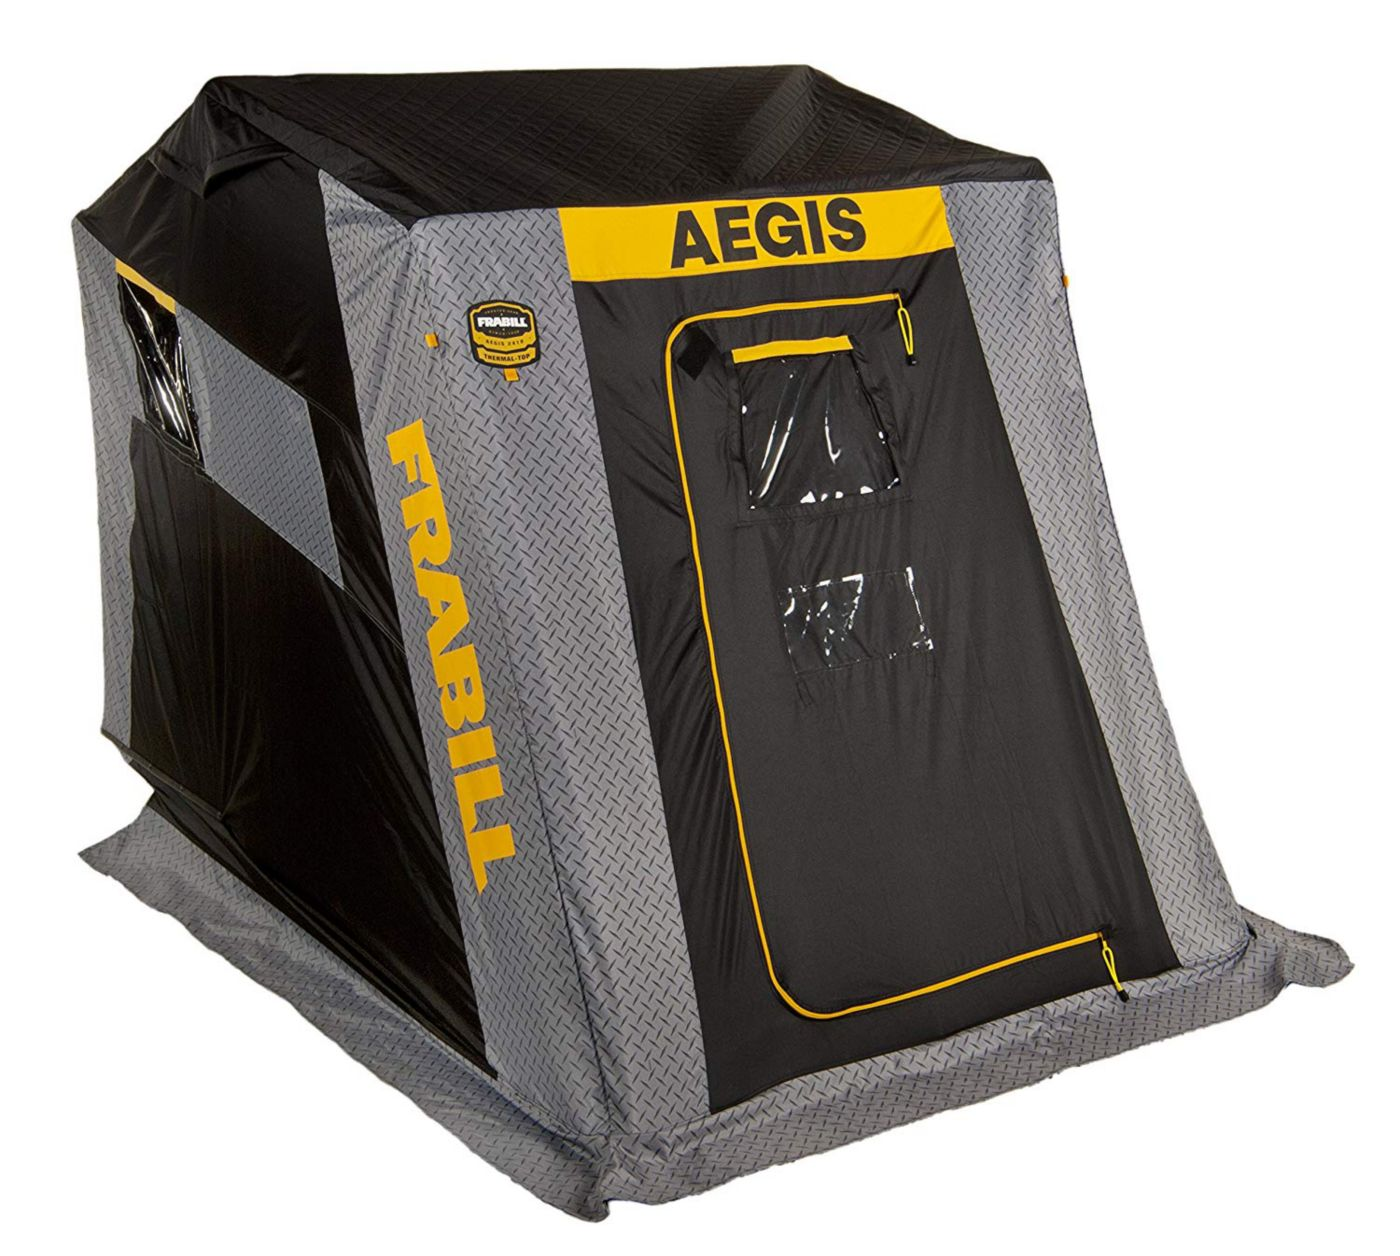 Frabill Aegis 2300 2-Person Ice Fishing Shelter 1